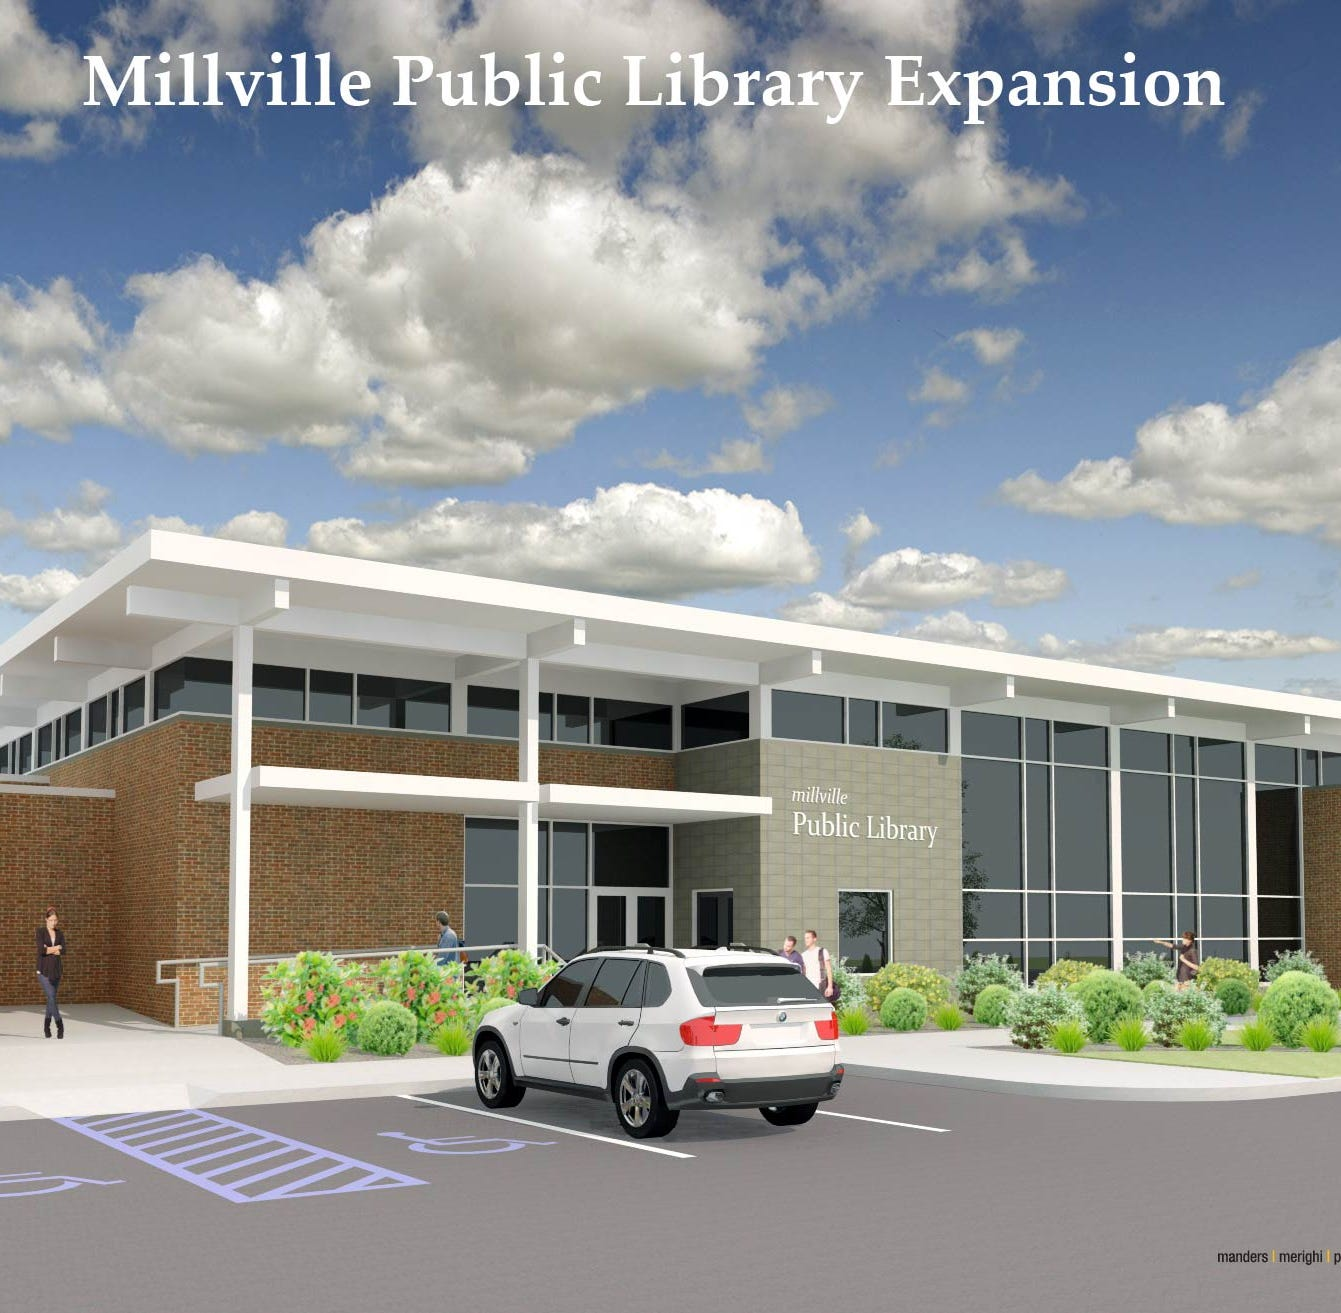 Millville library to double size, add teen center under expansion plan